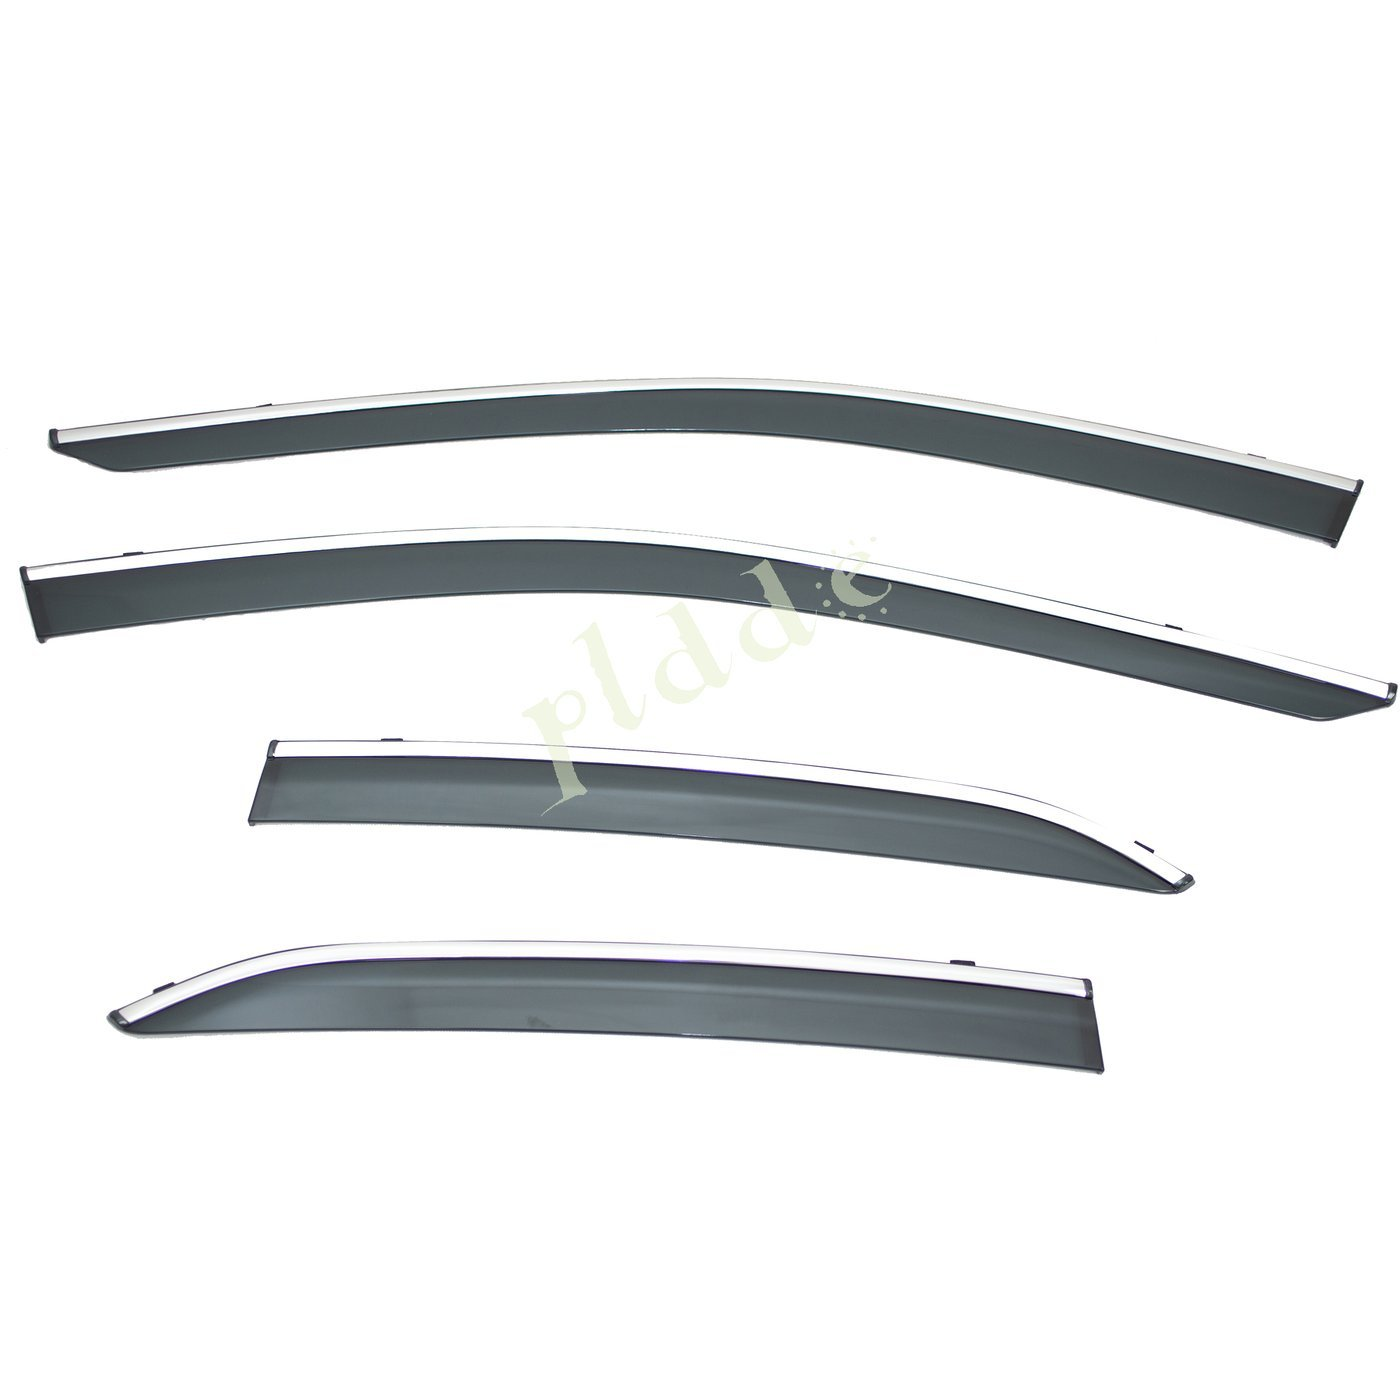 PLDDE 4pcs Smoke Tint With Chrome Trim Outside Mount Tape On//Clip On Style PVC Sun Rain Guard Window Visors Fit 18-19 Toyota Camry